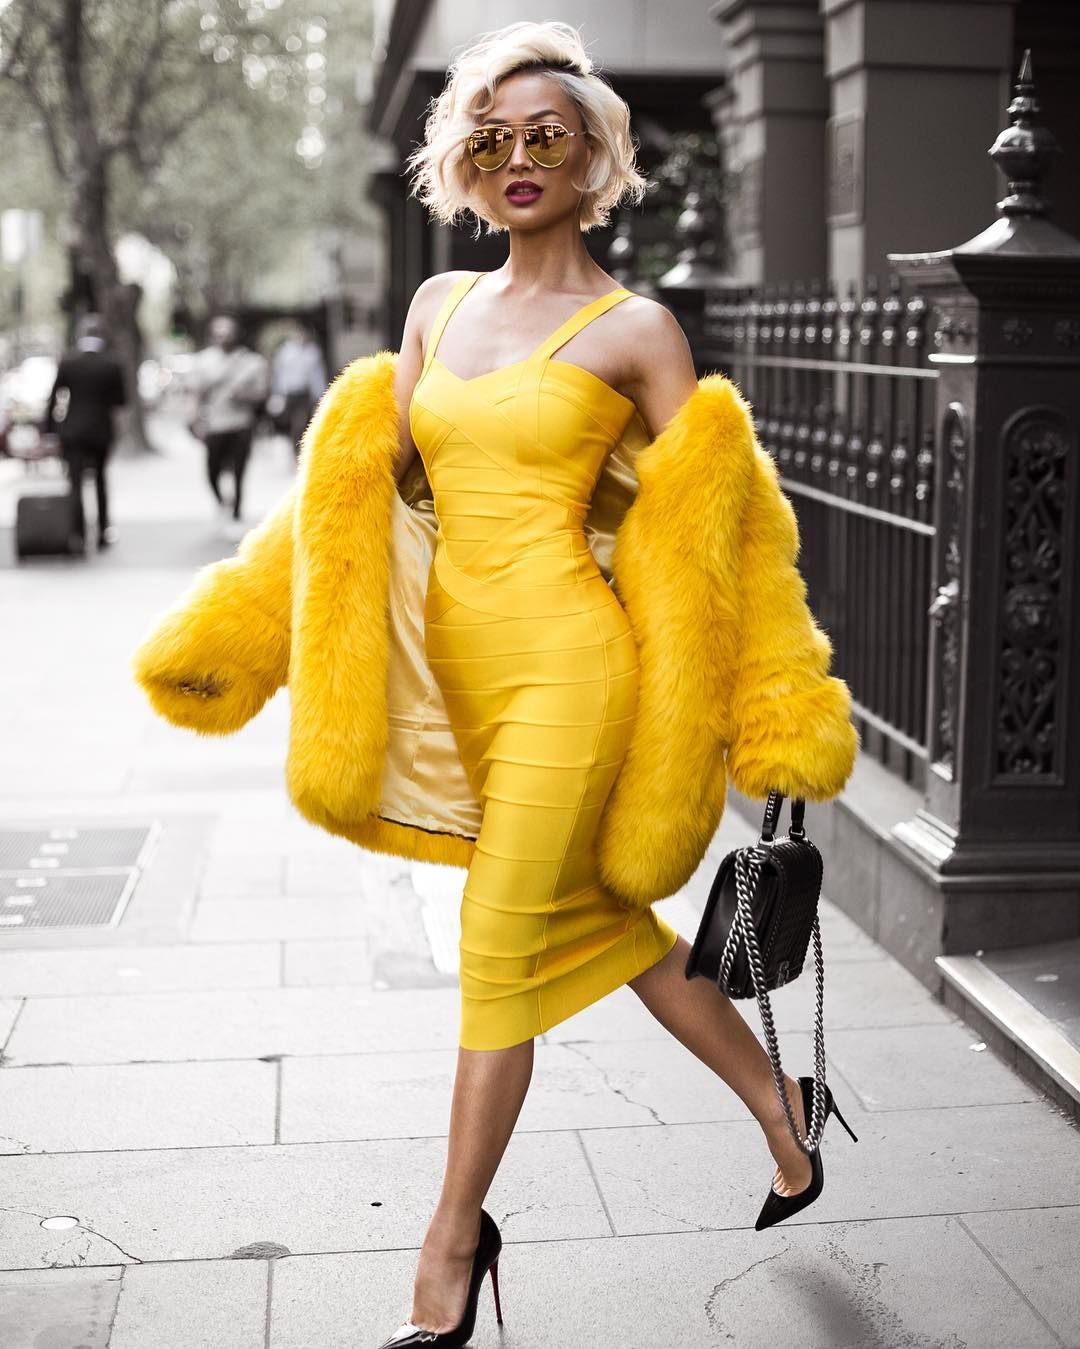 Micah gianneli hello yellow dress from toxicenvyboutique coat